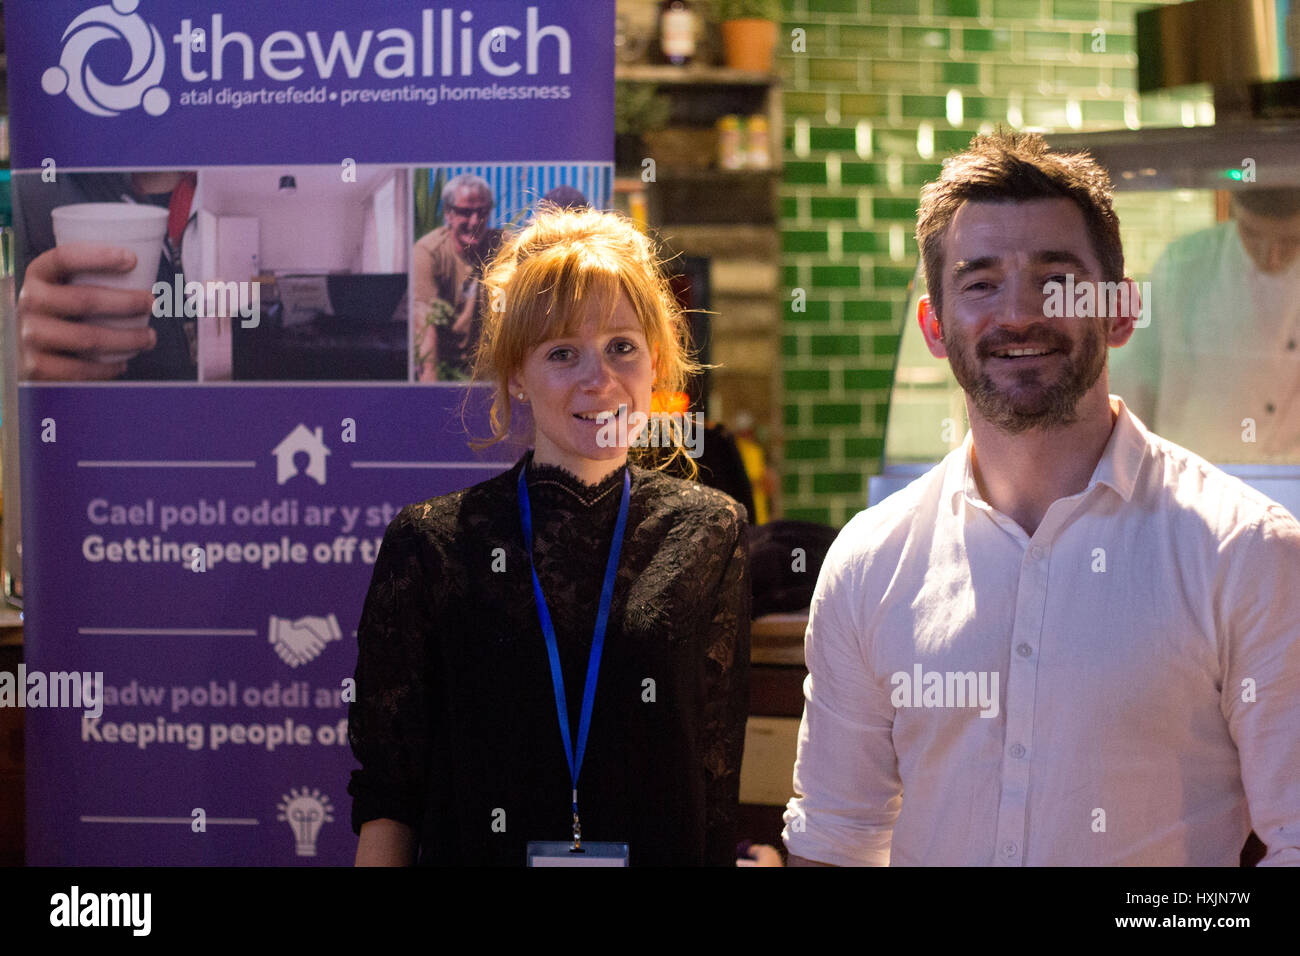 Jayce Connelly and David Bennett representing theWallich, a homelessness charity. Stall holders at the Cardiff Bierkeller - Stock Image